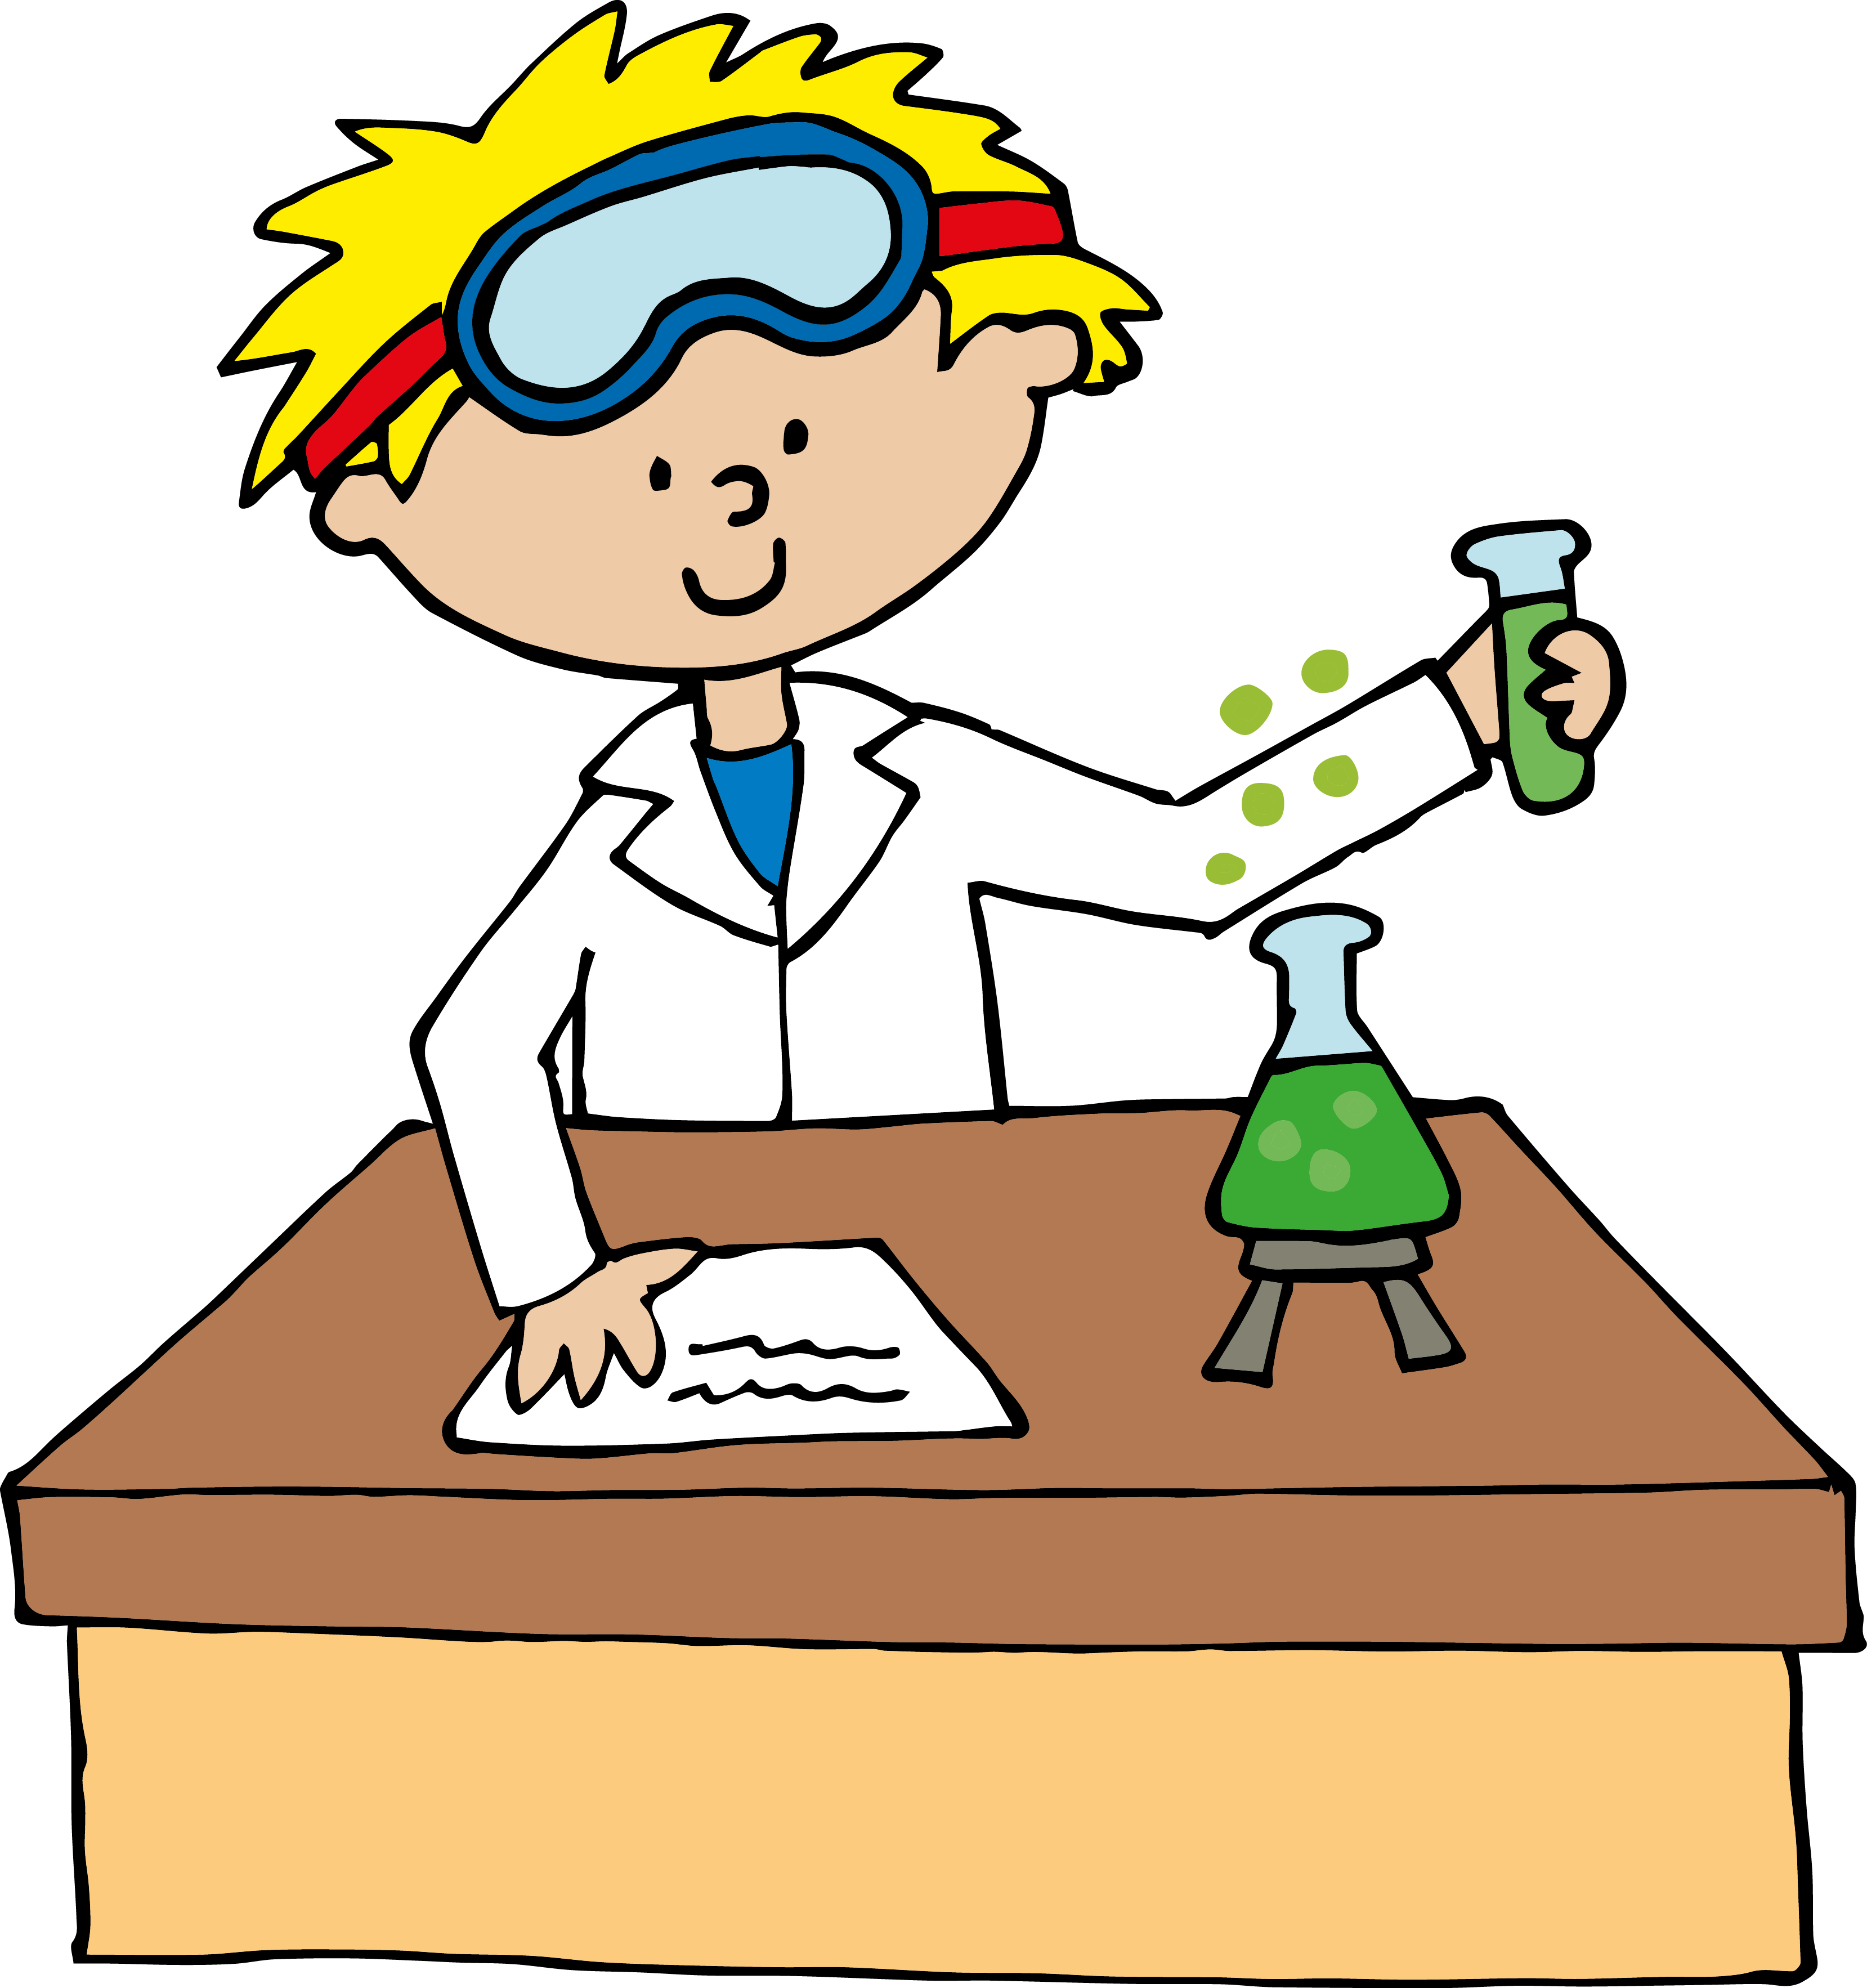 stem clipart science experiment science